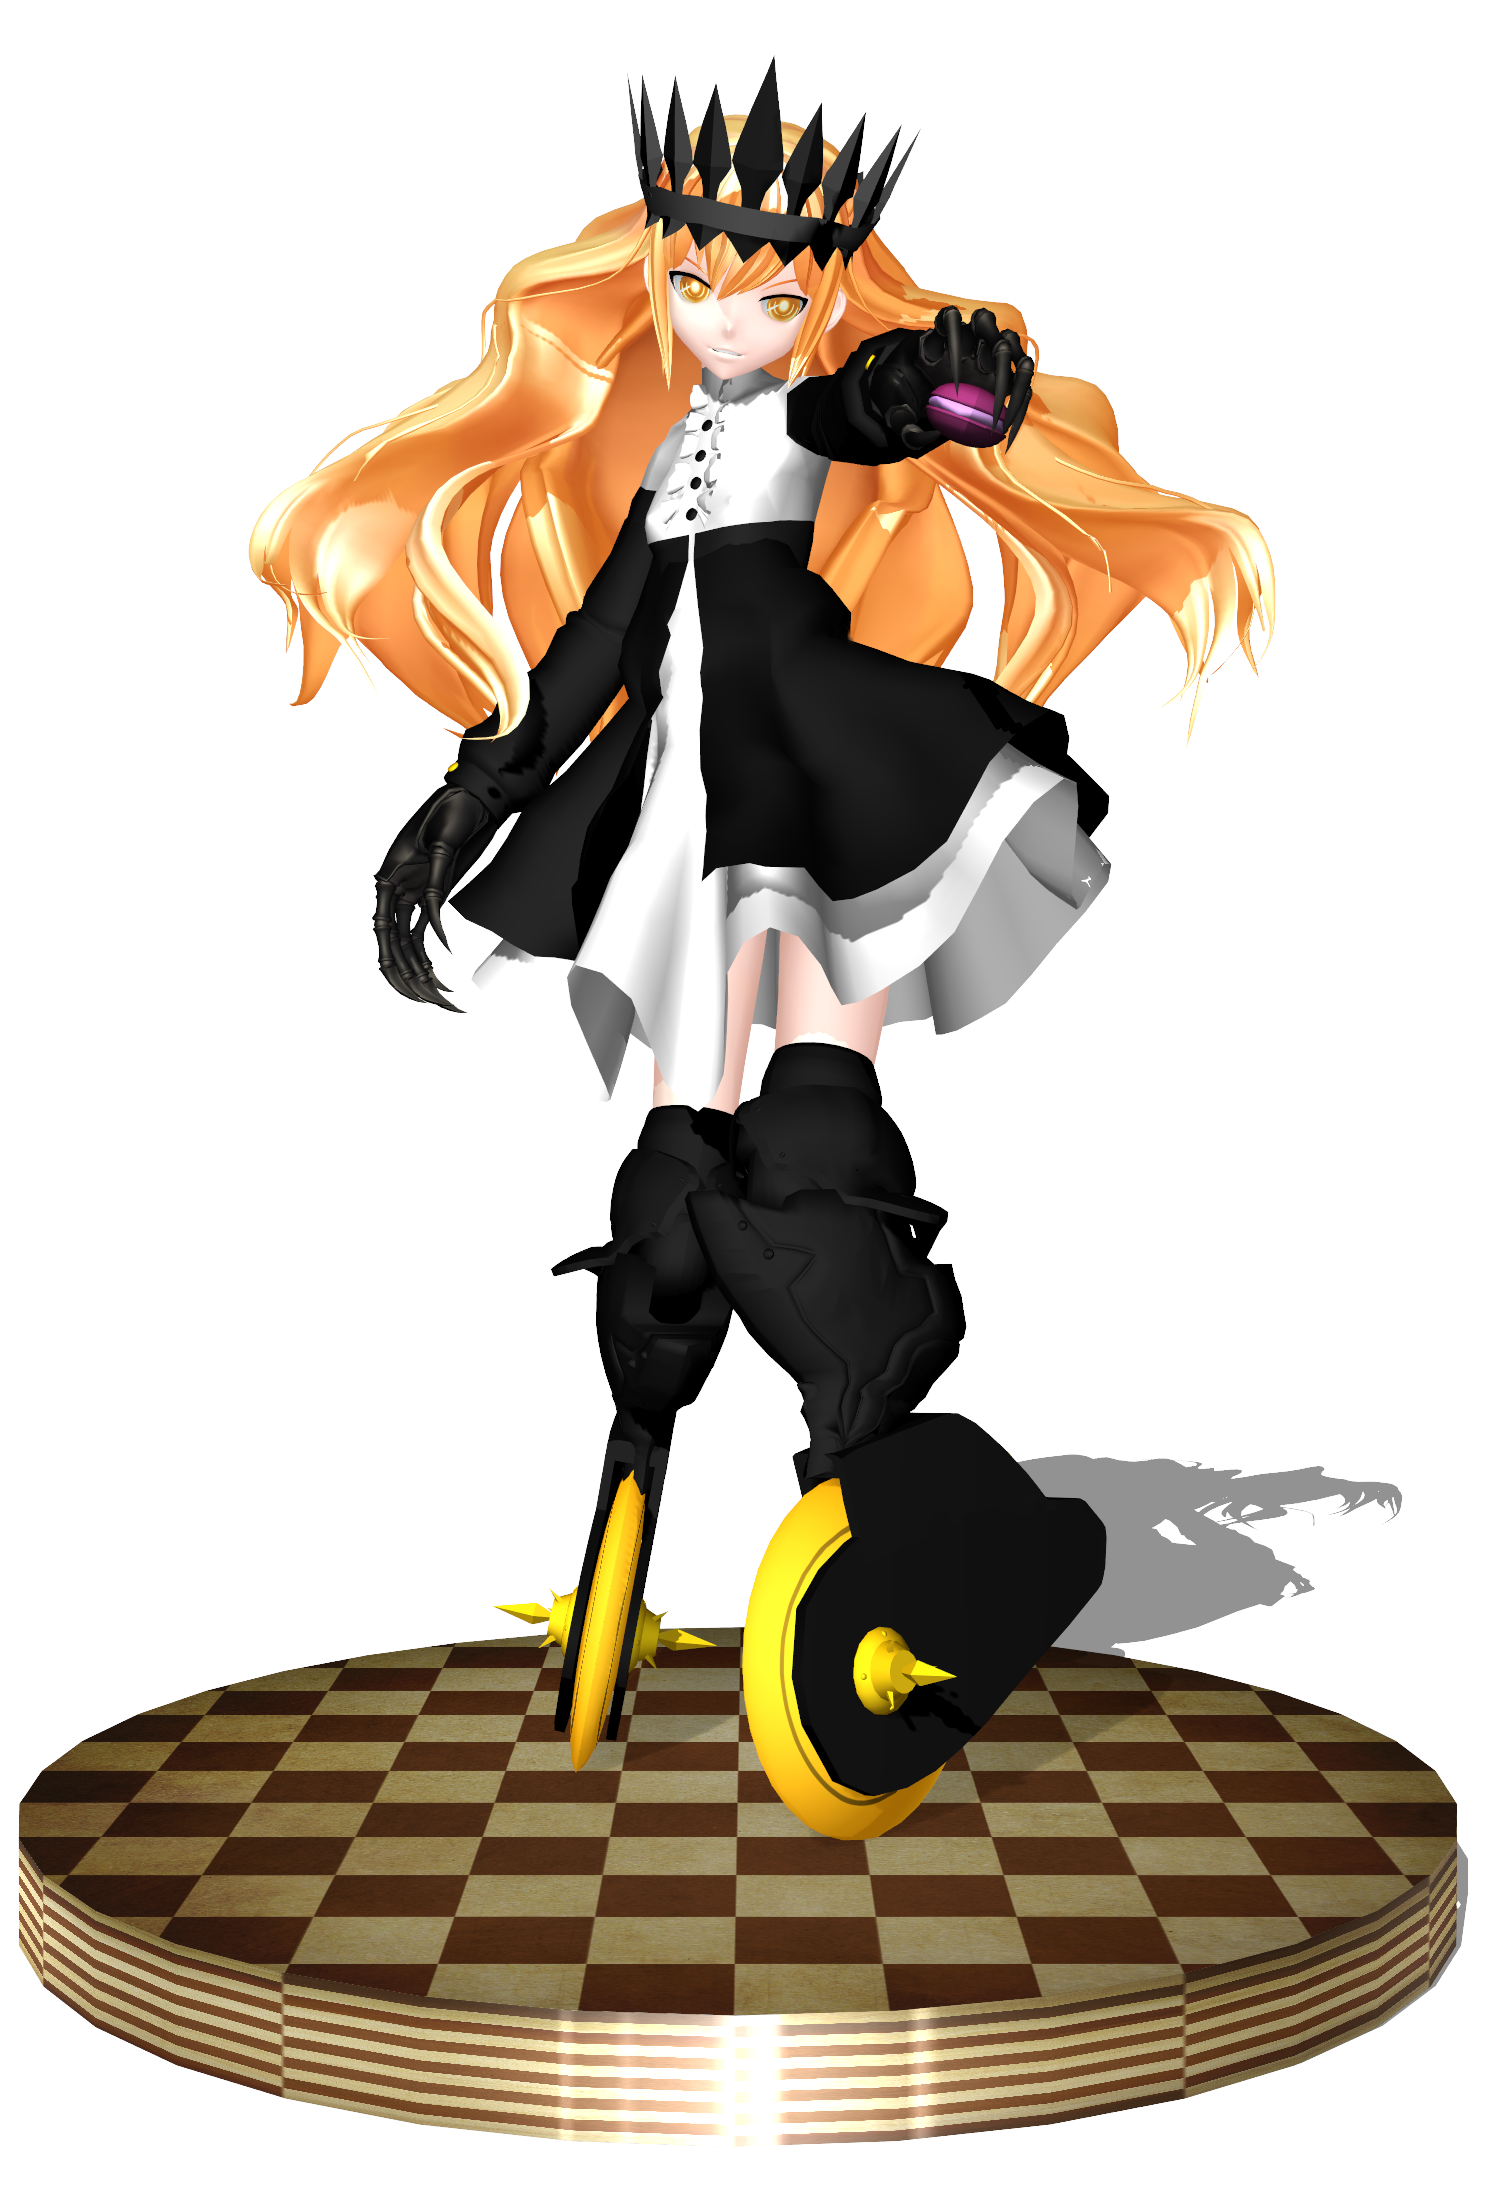 MMD - Chariot by Ina-C